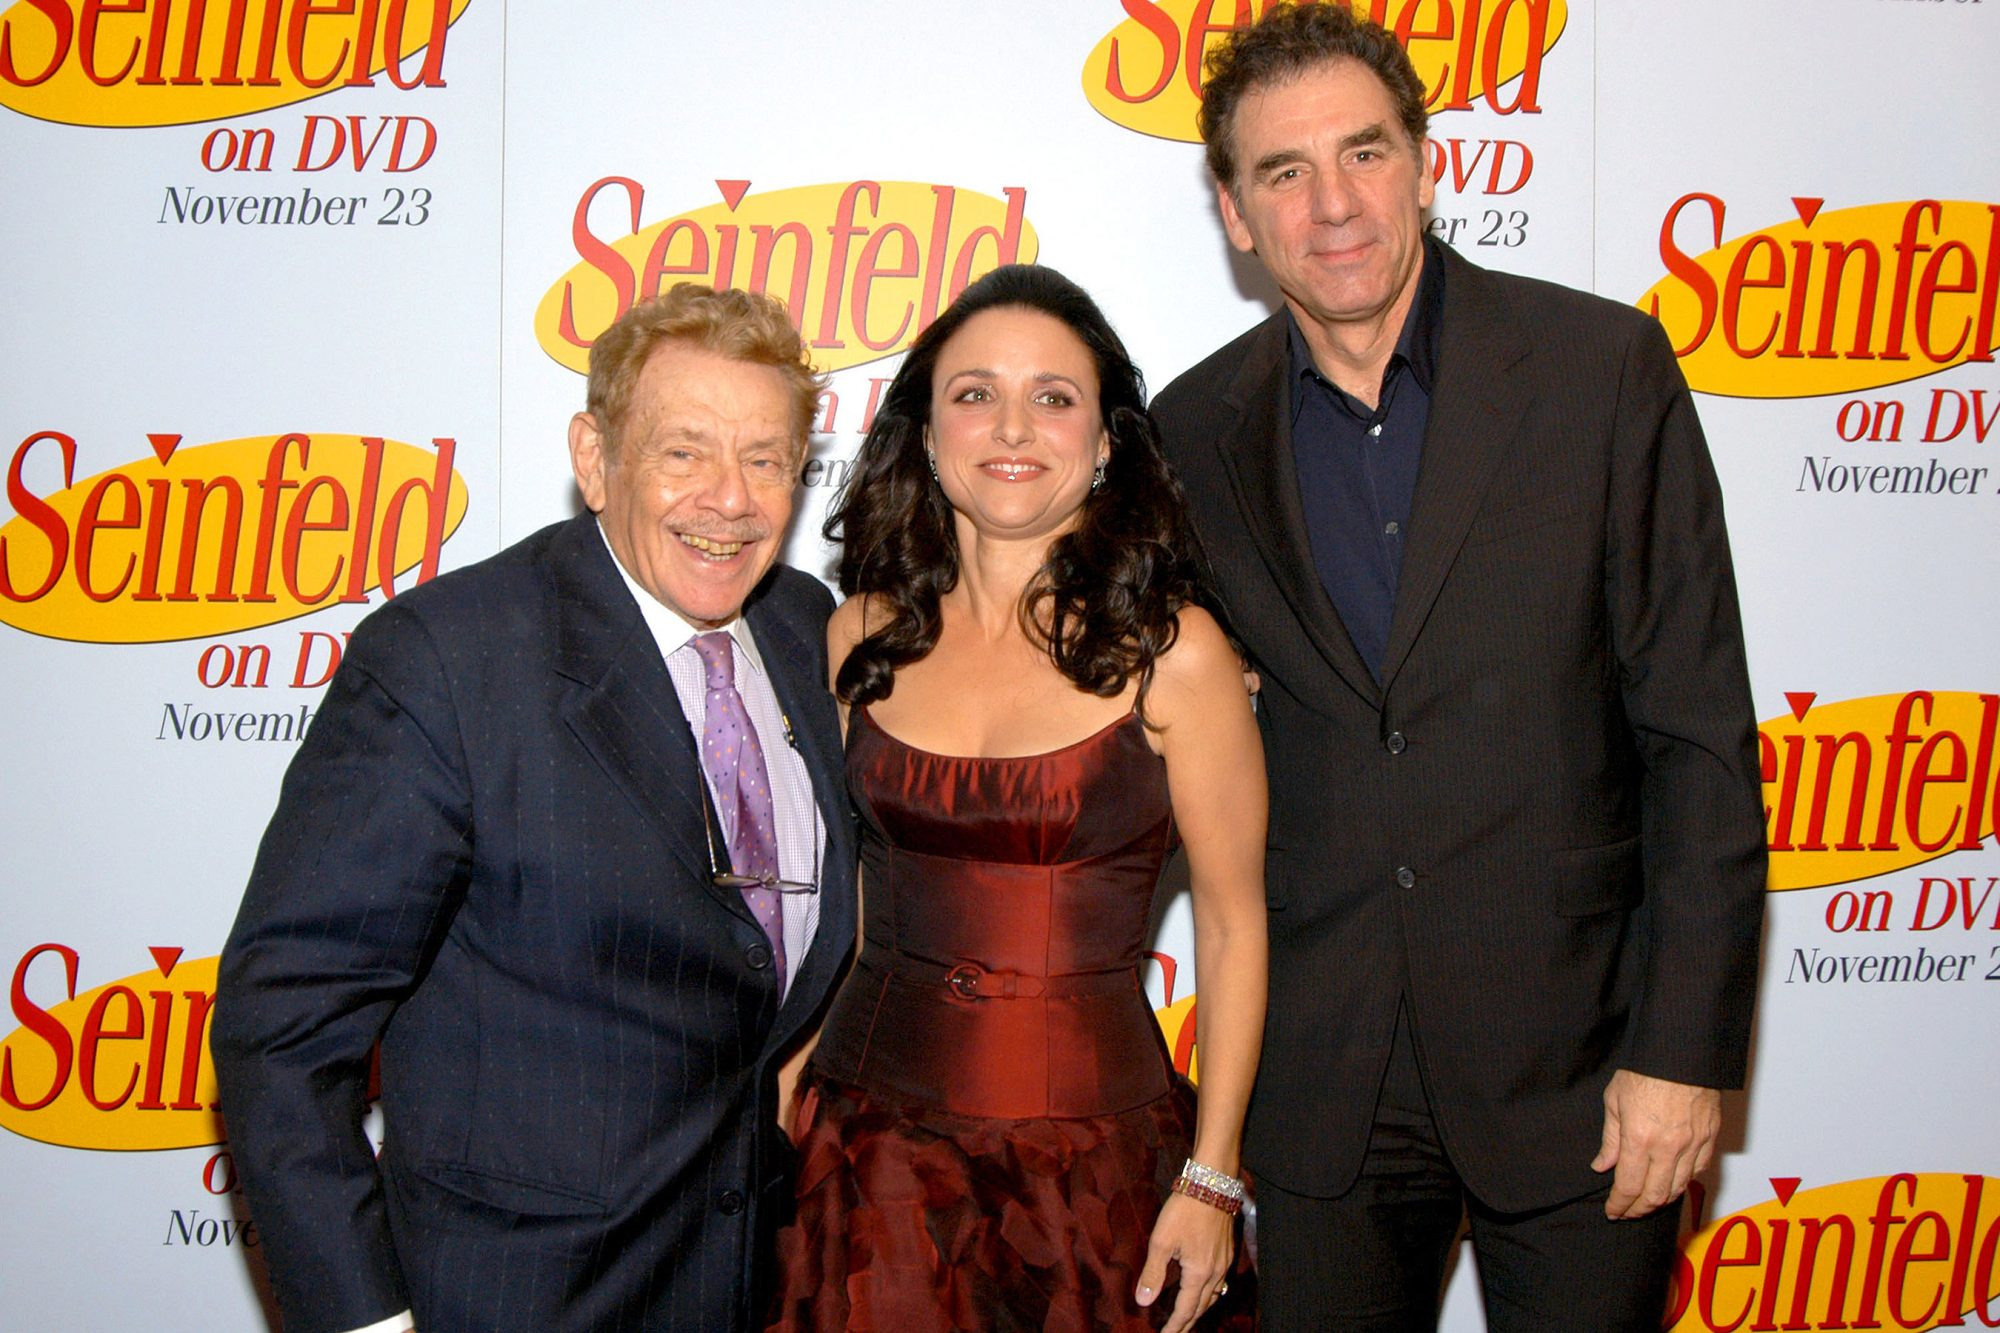 Release of Seinfeld on DVD